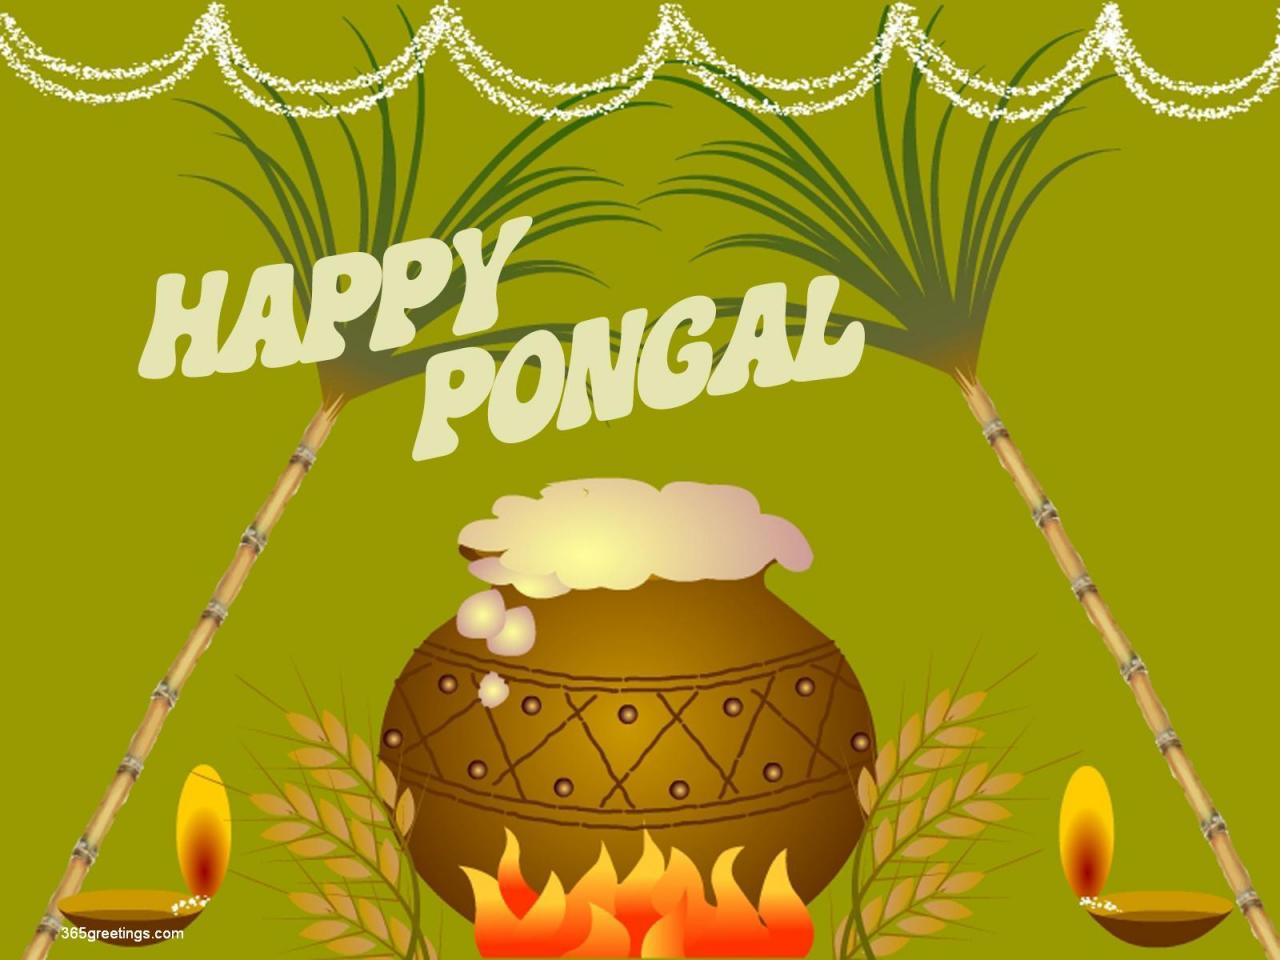 Free greeting cards download cards for festival pongal greetings pongal festival greetings for free ecards for pongal pongal wishes greetings free greetings for pongal happy pongal greetings mattu pongal 2012 m4hsunfo